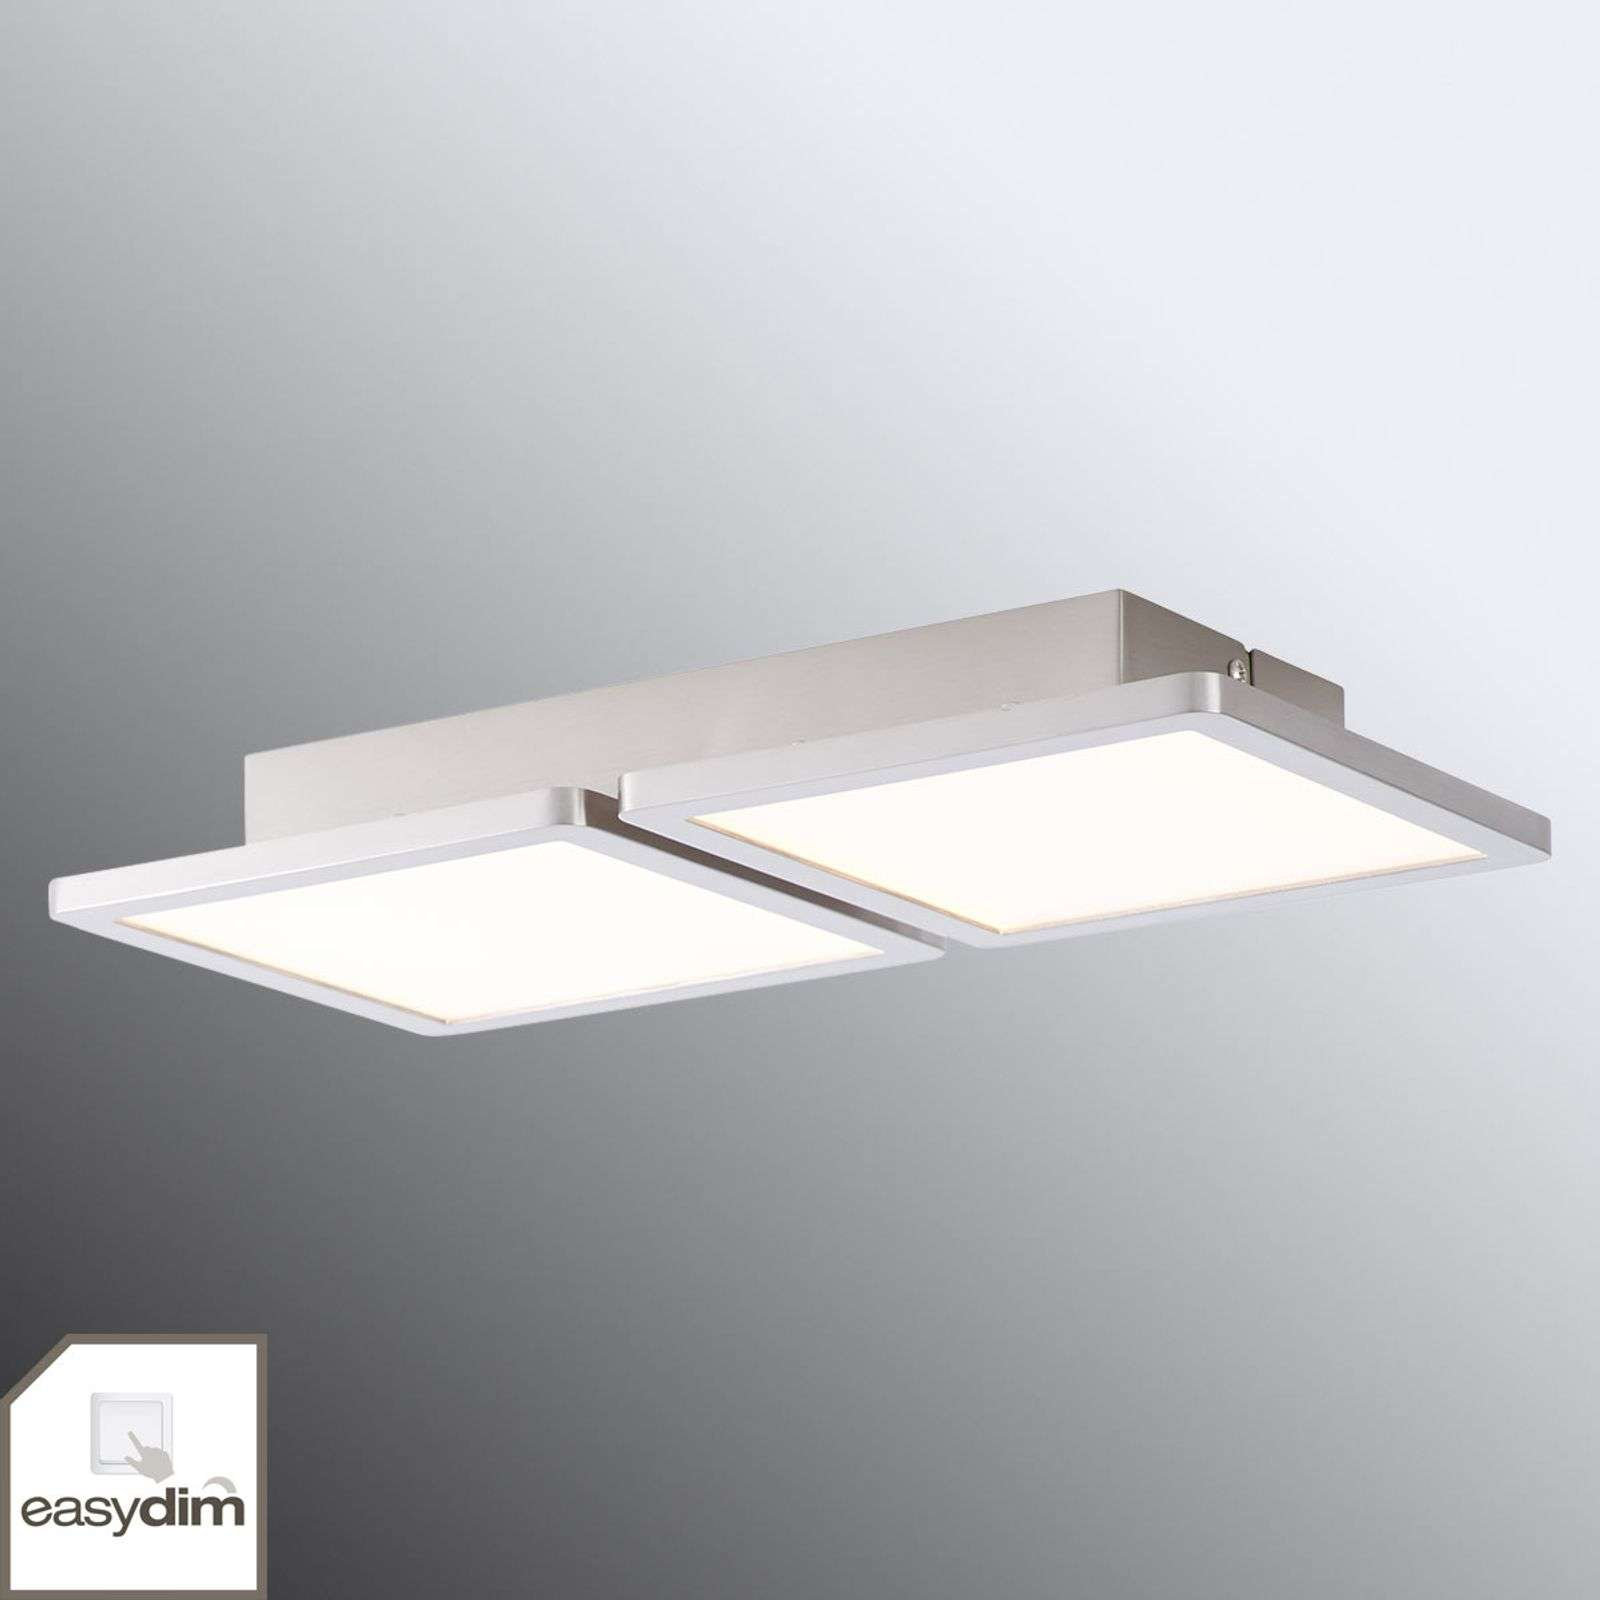 Lampada LED da soffitto Scope a 2 luci dimmerabile